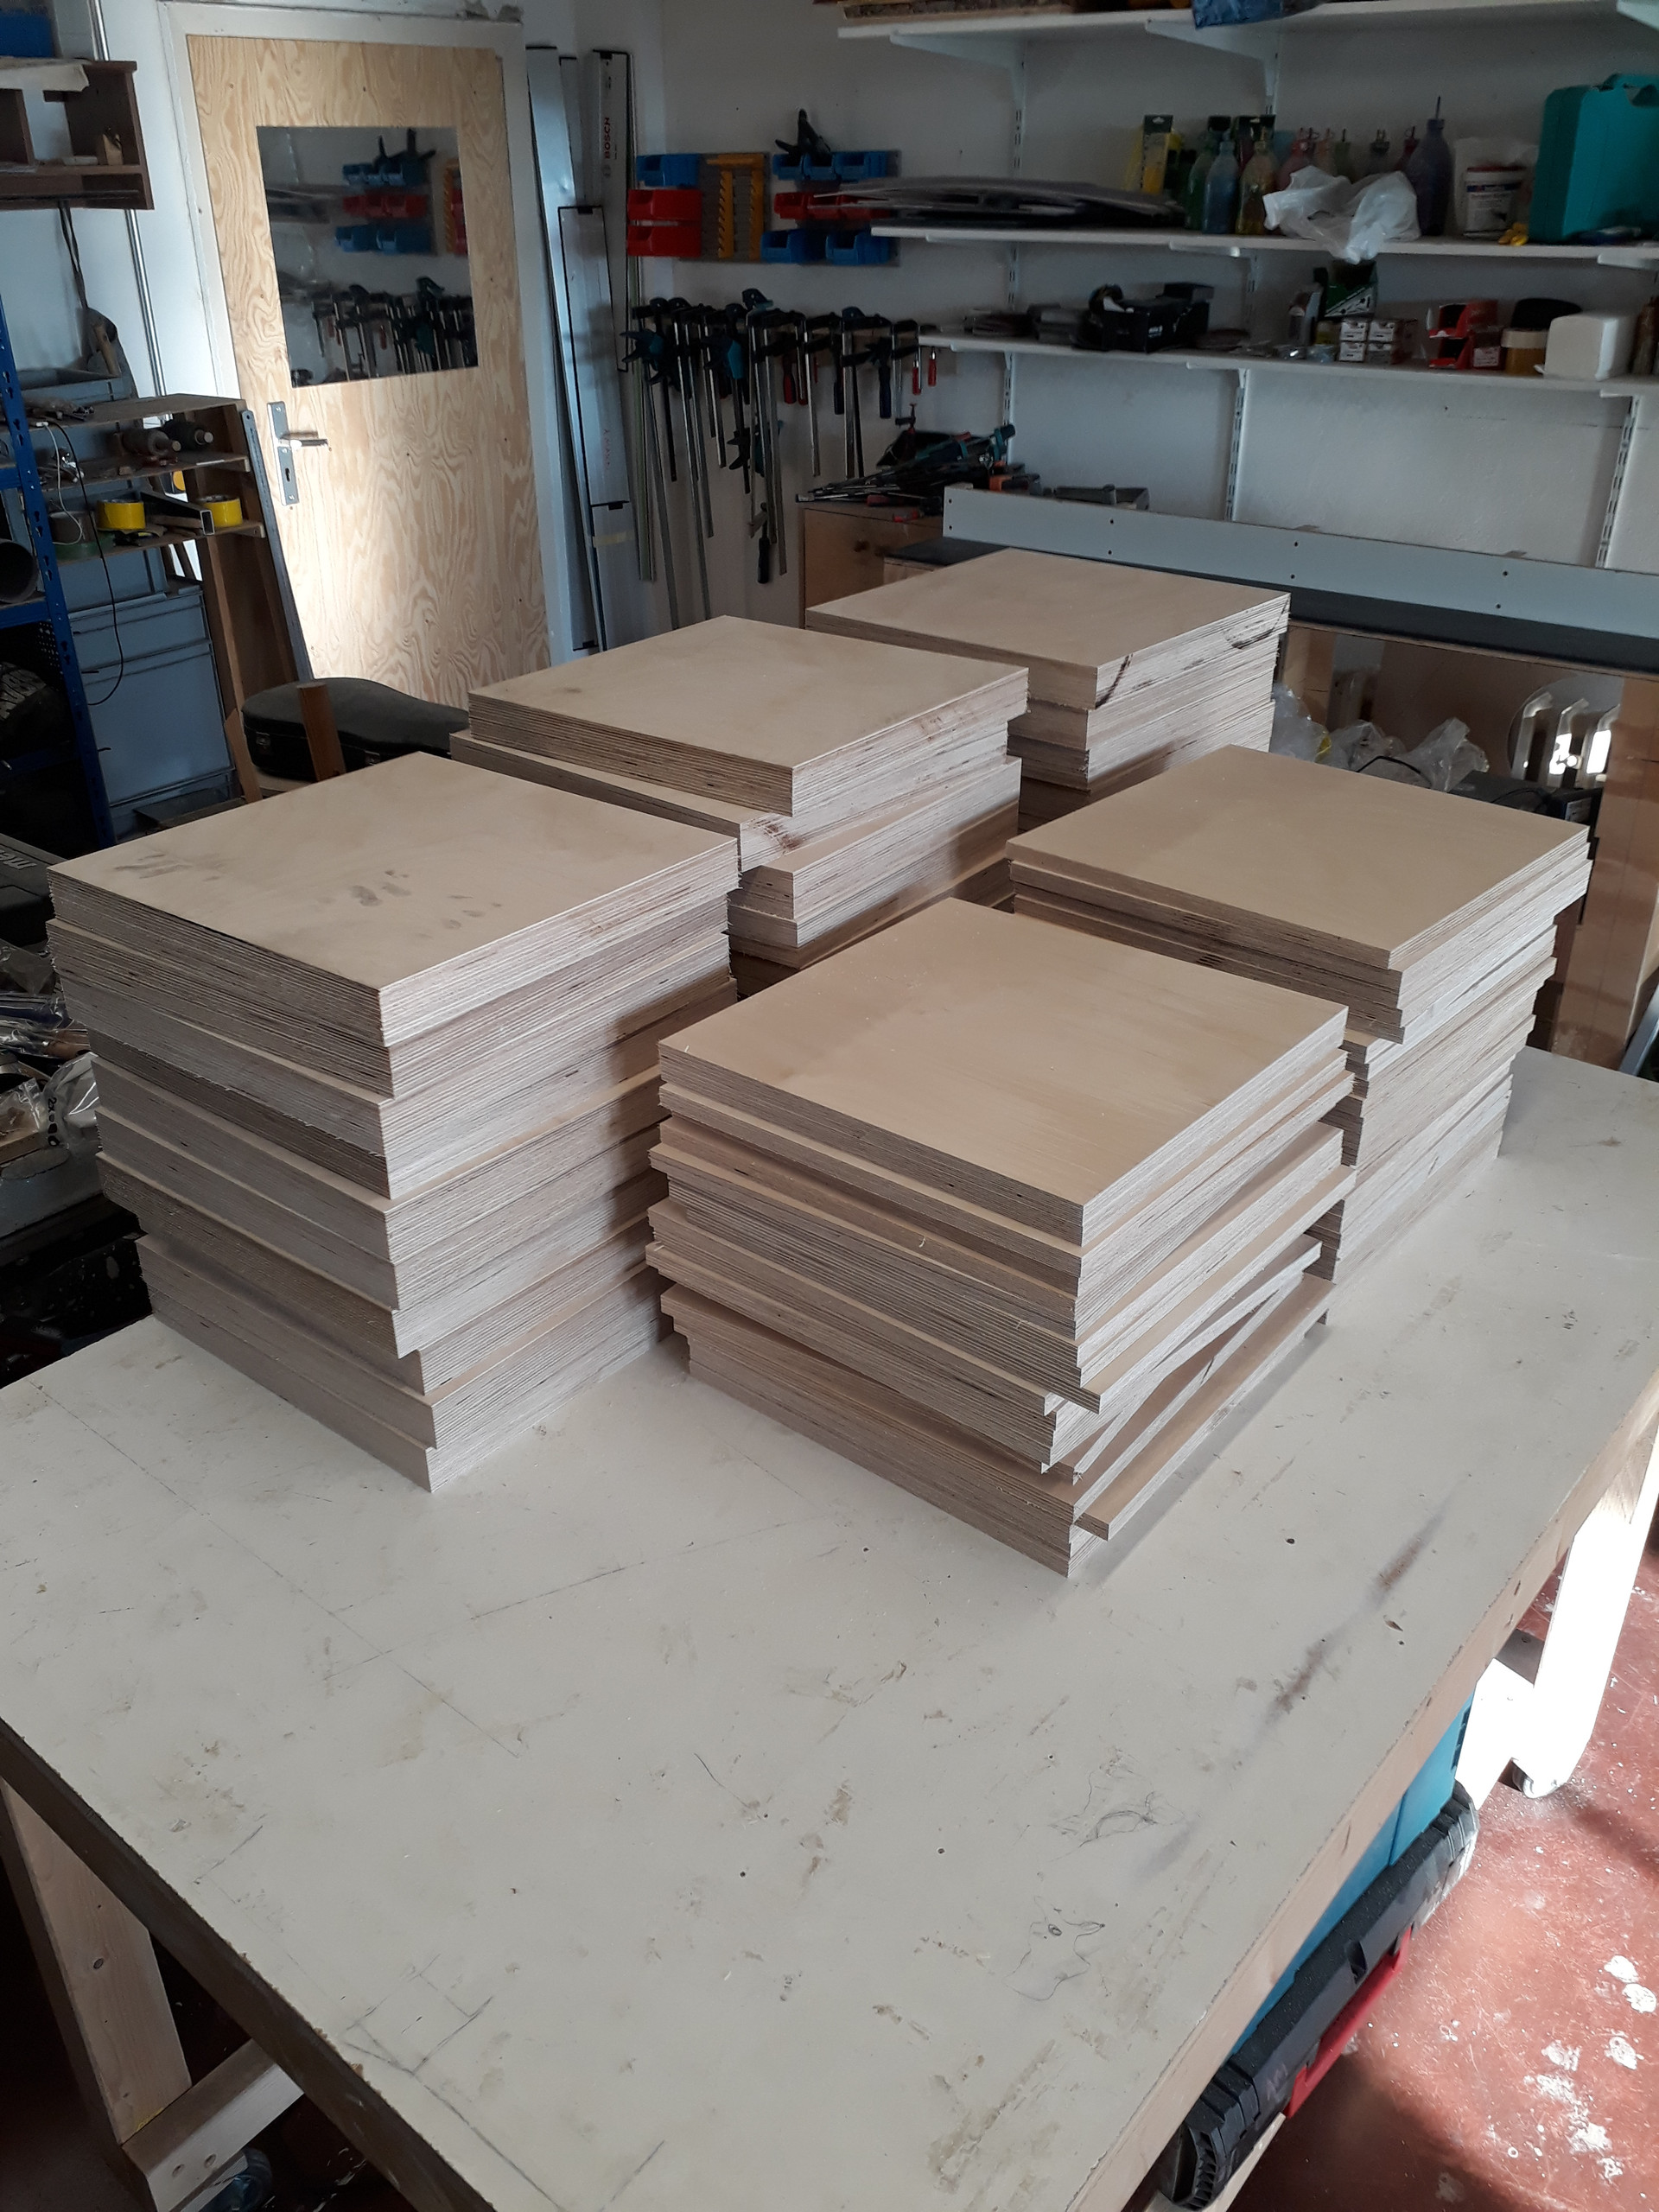 Boards ready for routing